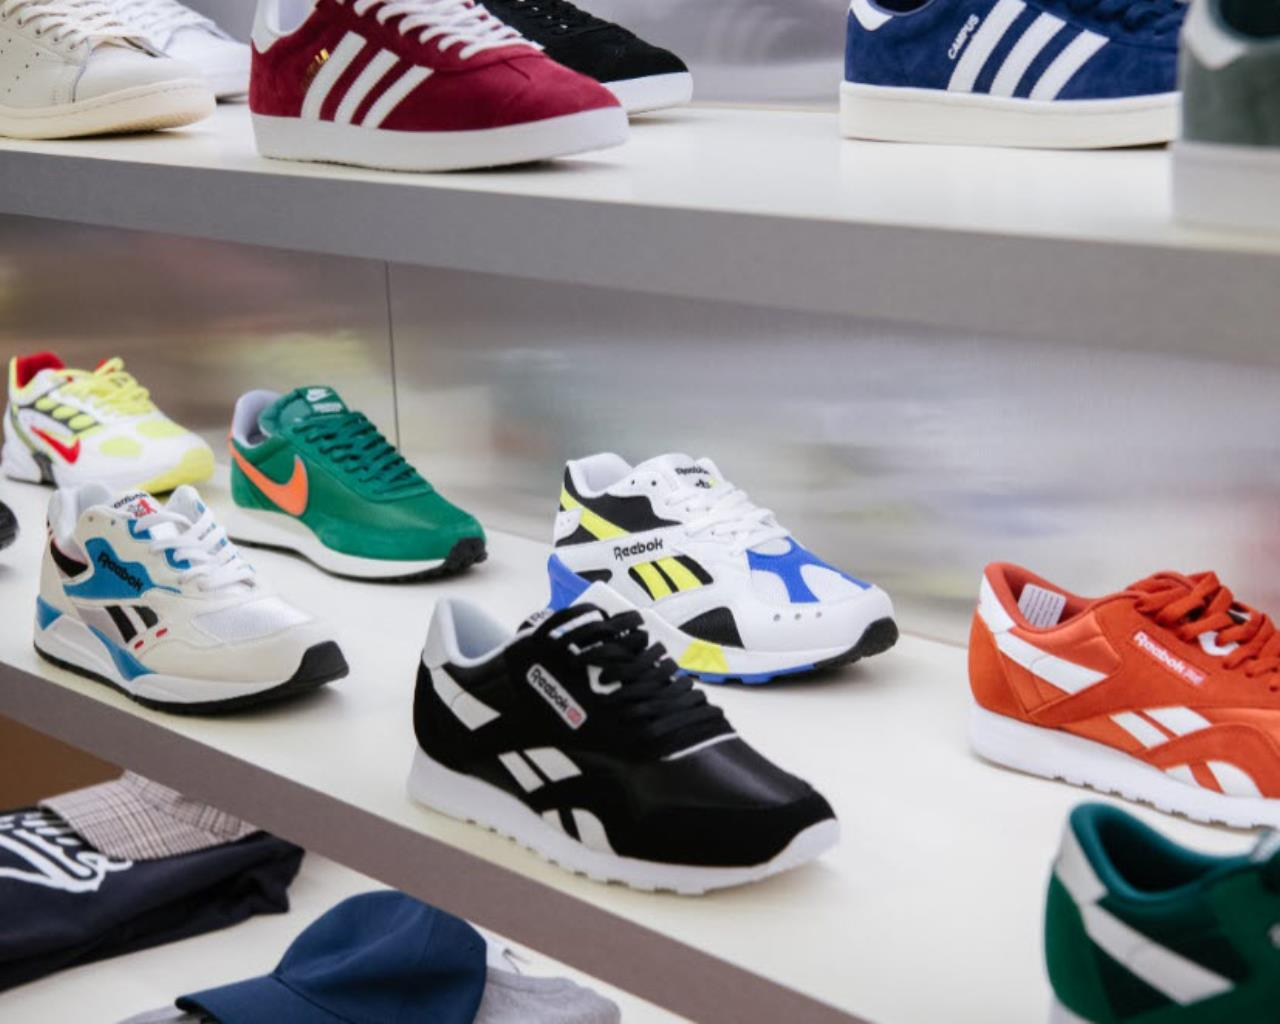 Highs and Lows shoe display